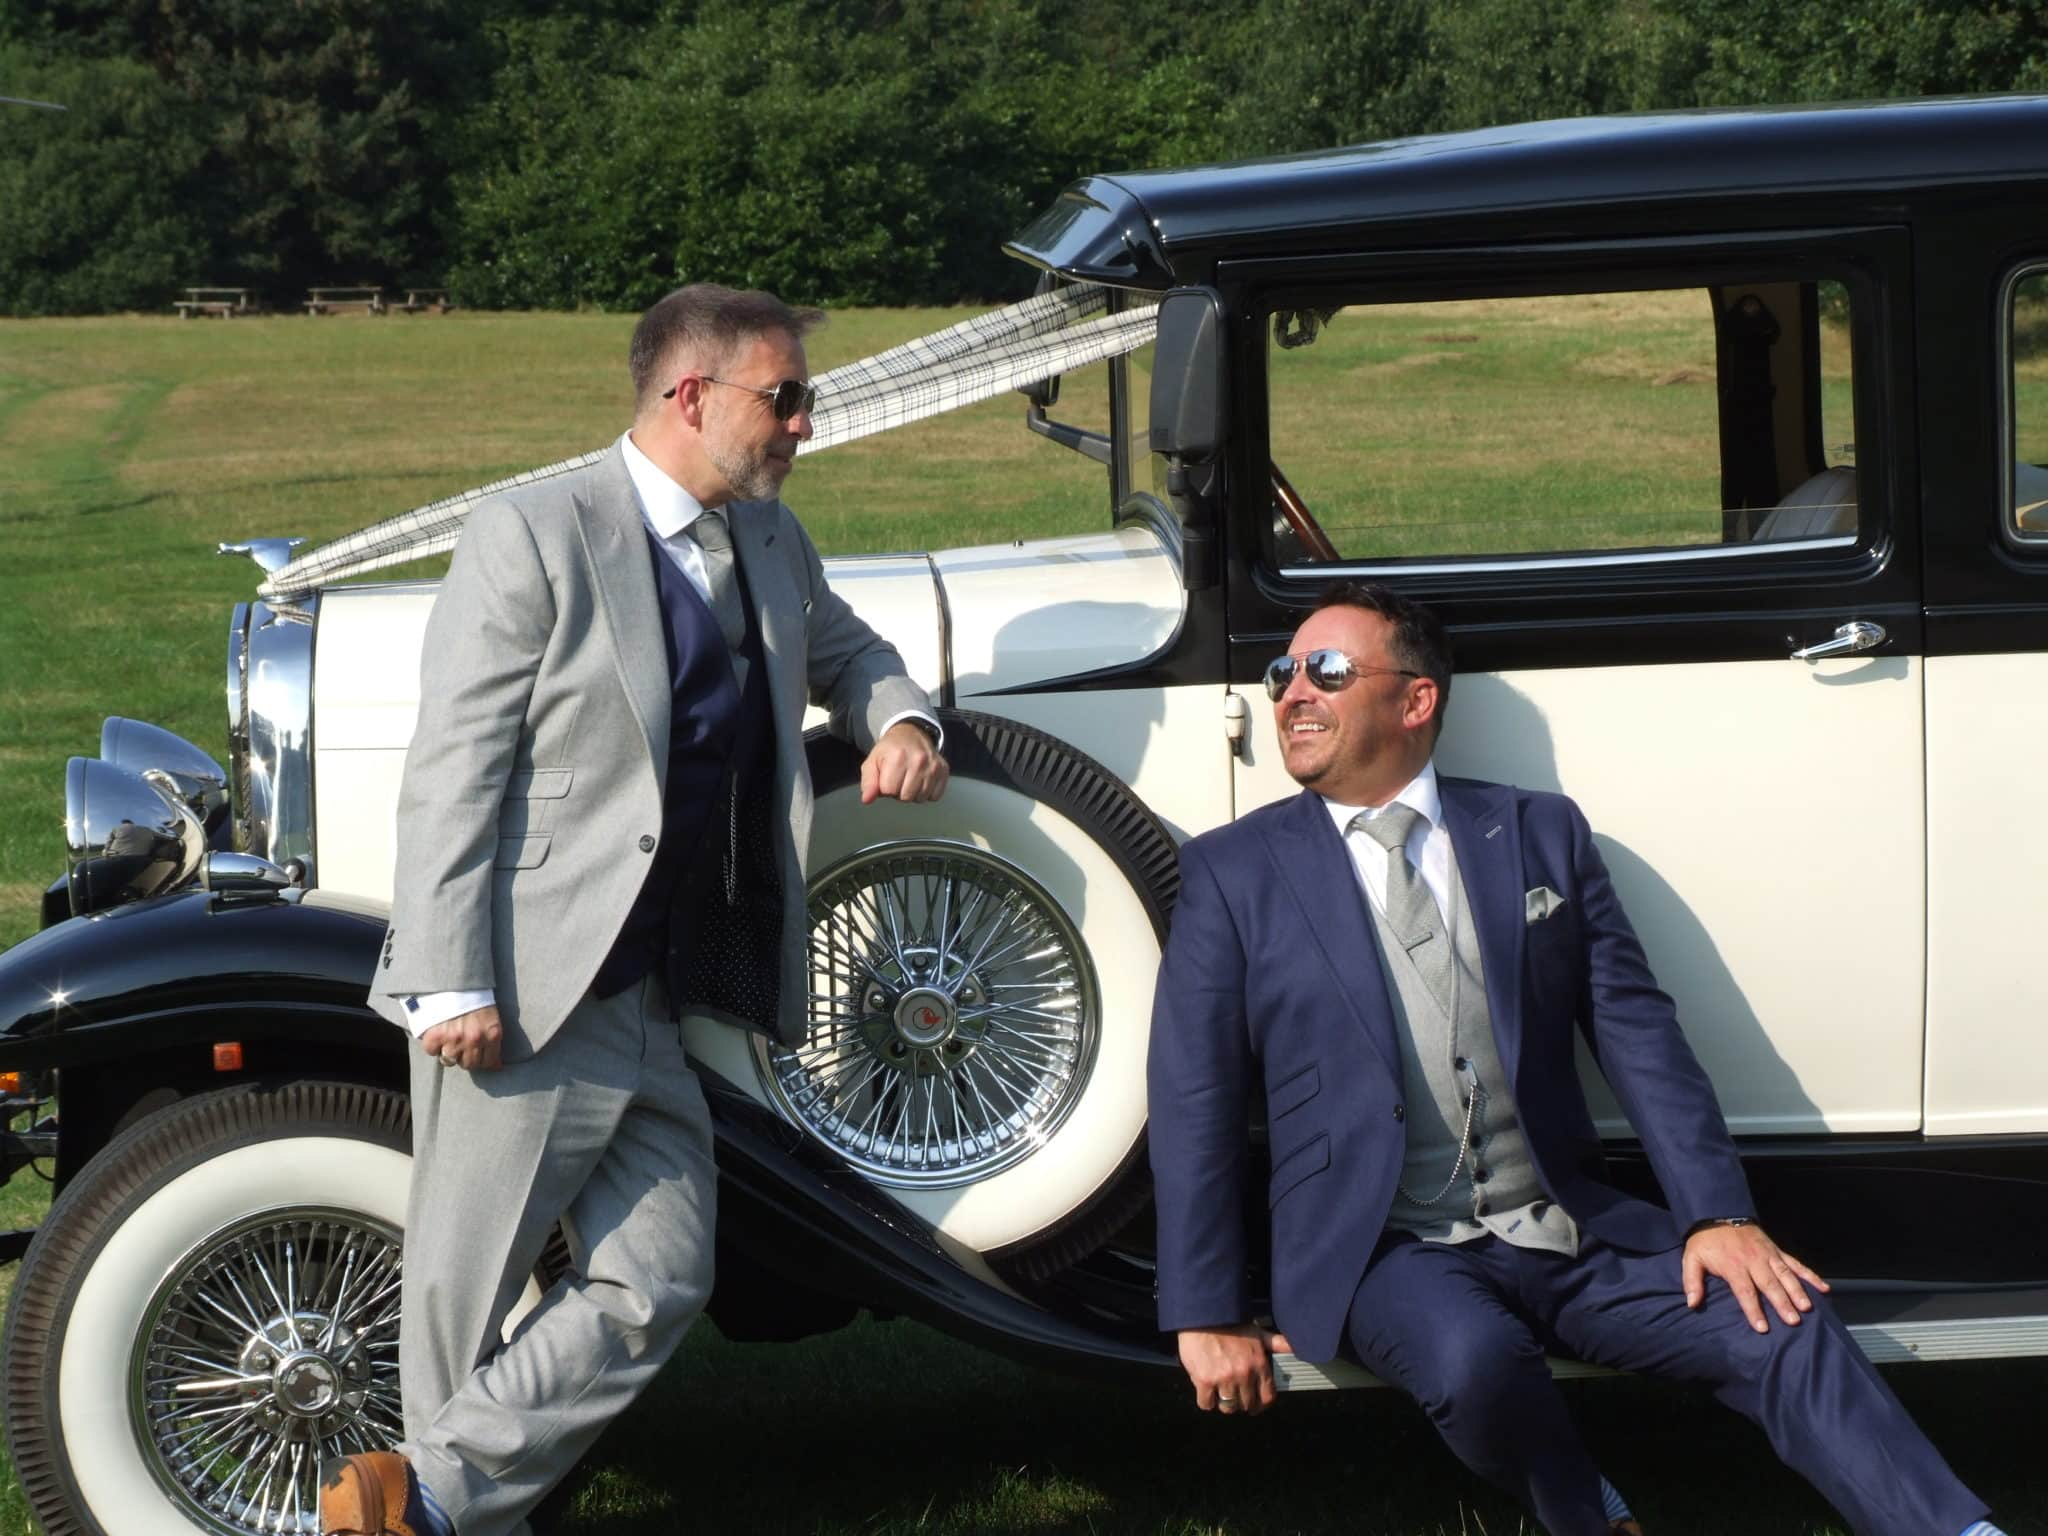 Wedding car hire prices in Reading